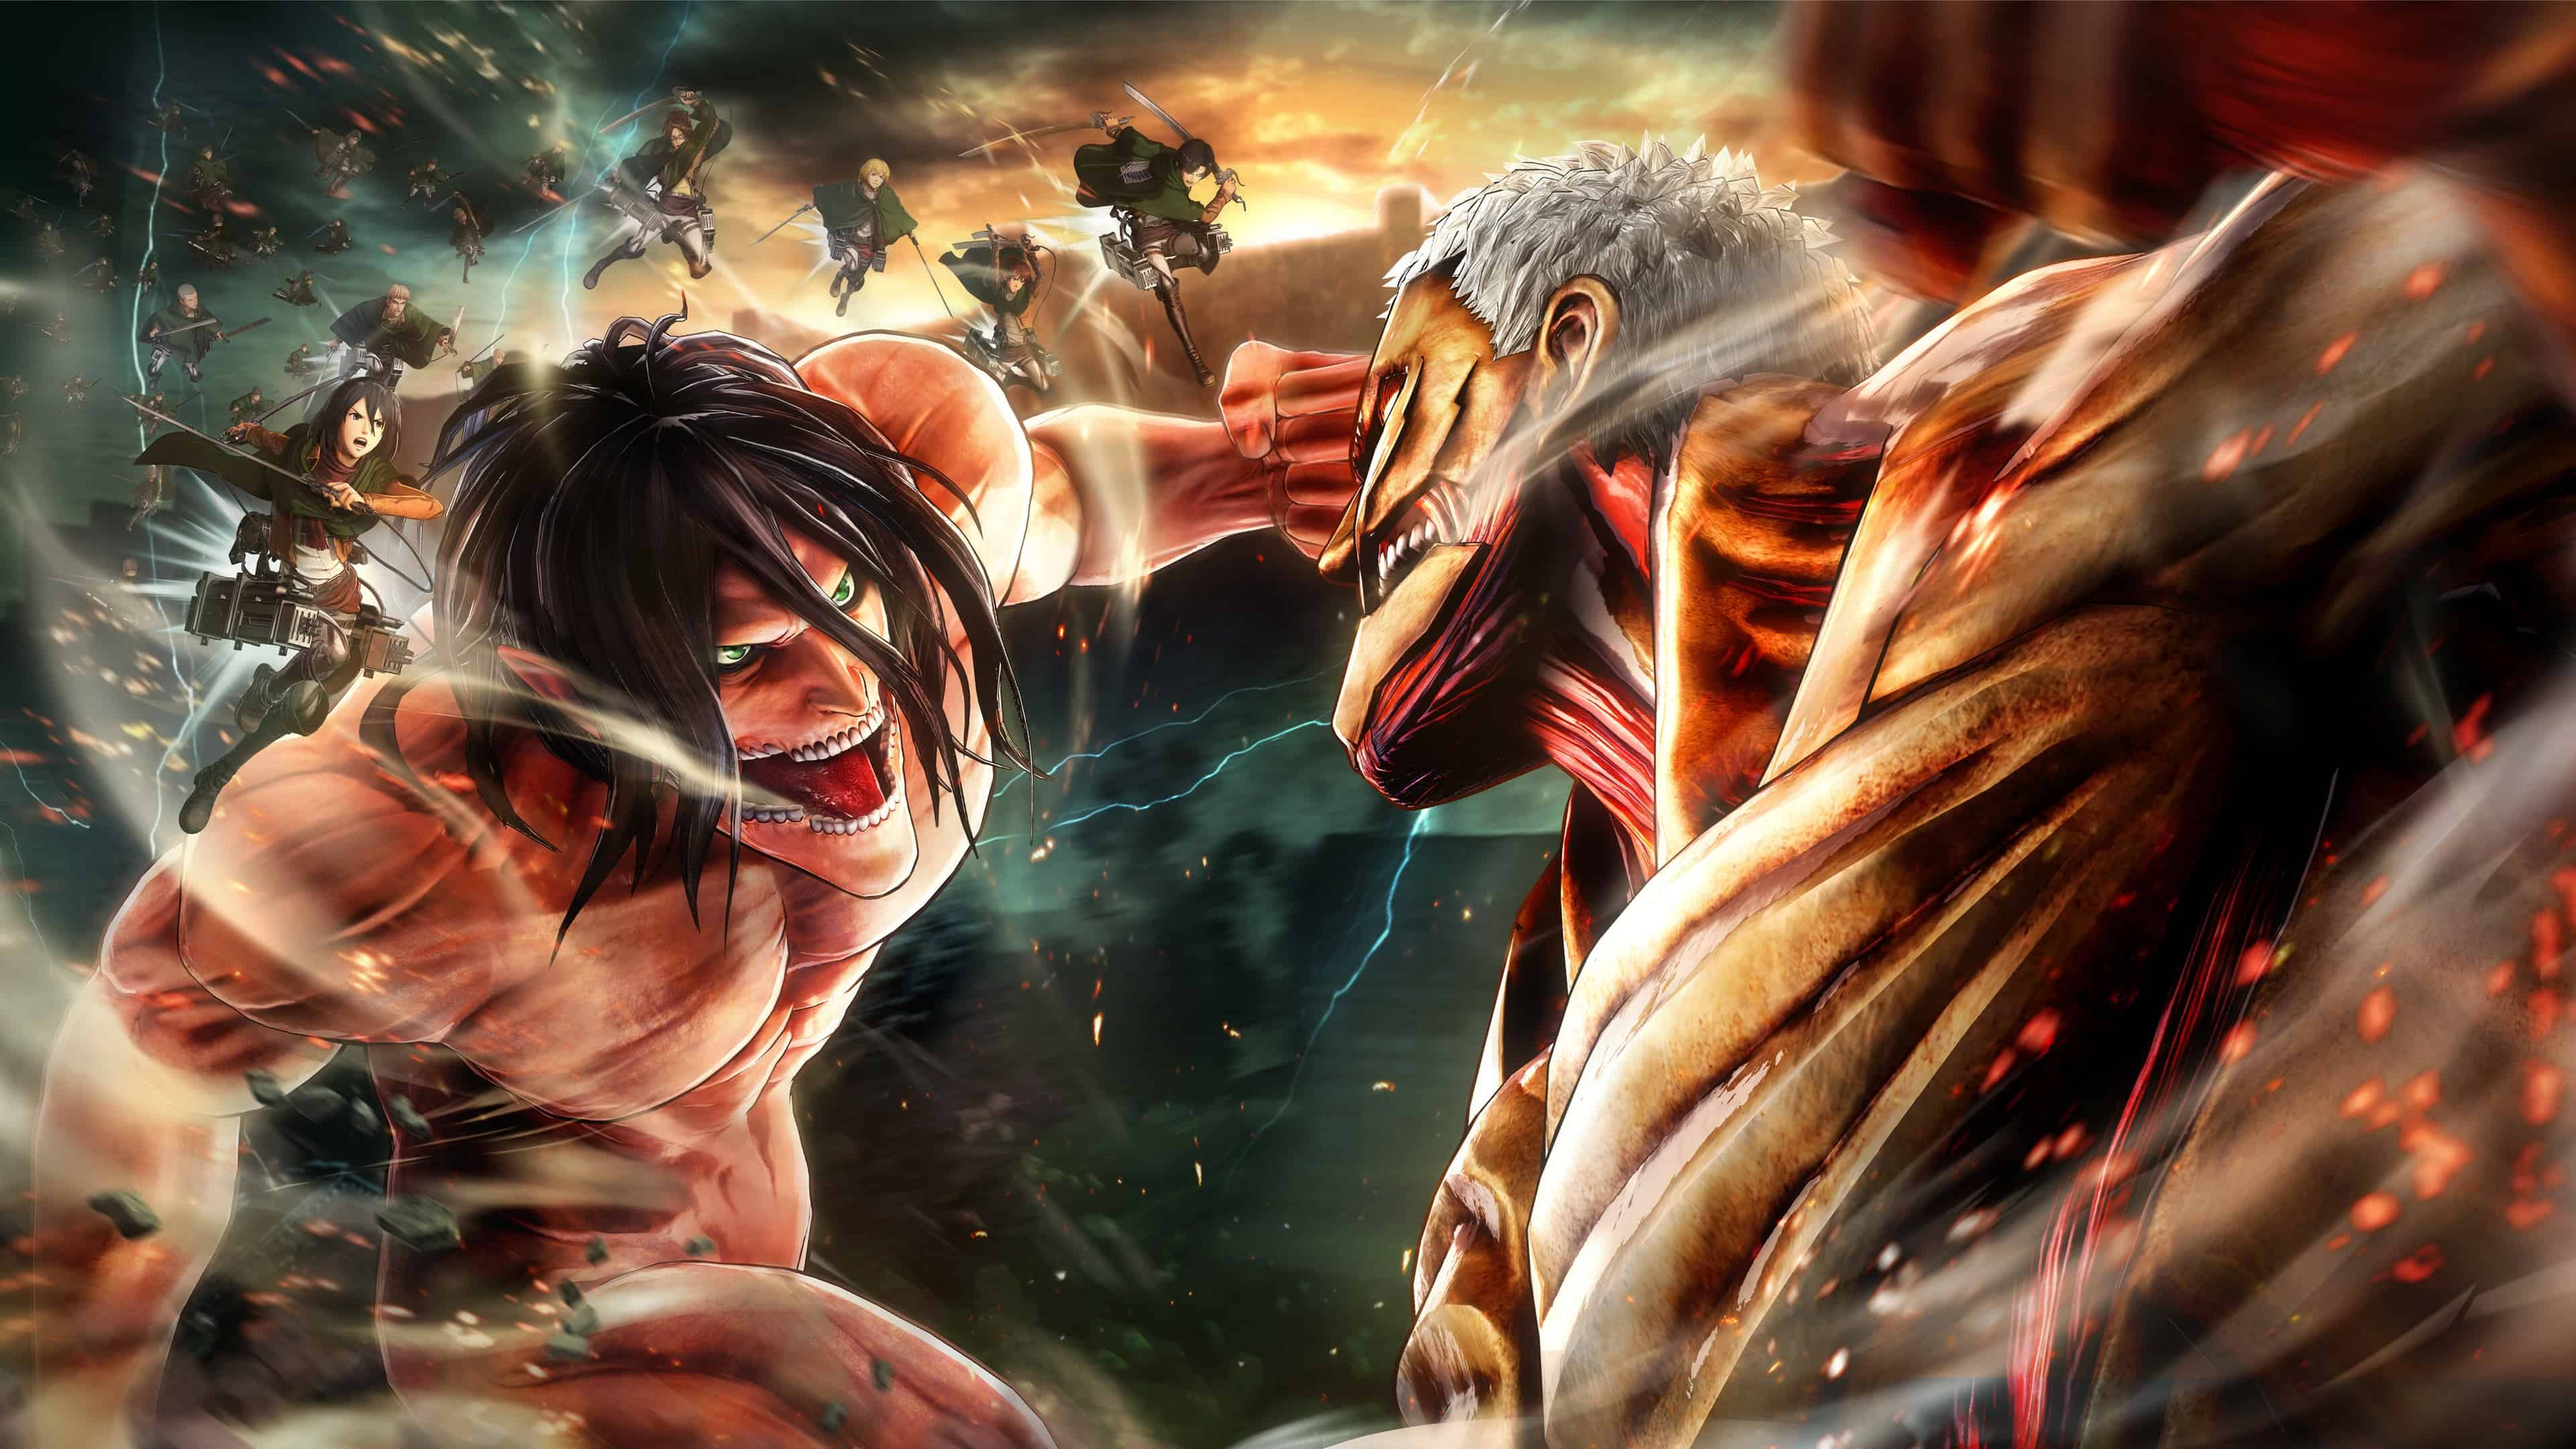 Attack On Titan Wallpaper 4k Pc Mikasa Ackerman 4k 8k Hd Attack On Titan Shingeki No Kyojin Wallpaper Attack On Titan Anime 4k Pc Wallpapers Wallpaper Cave Attack On Titan Japanese